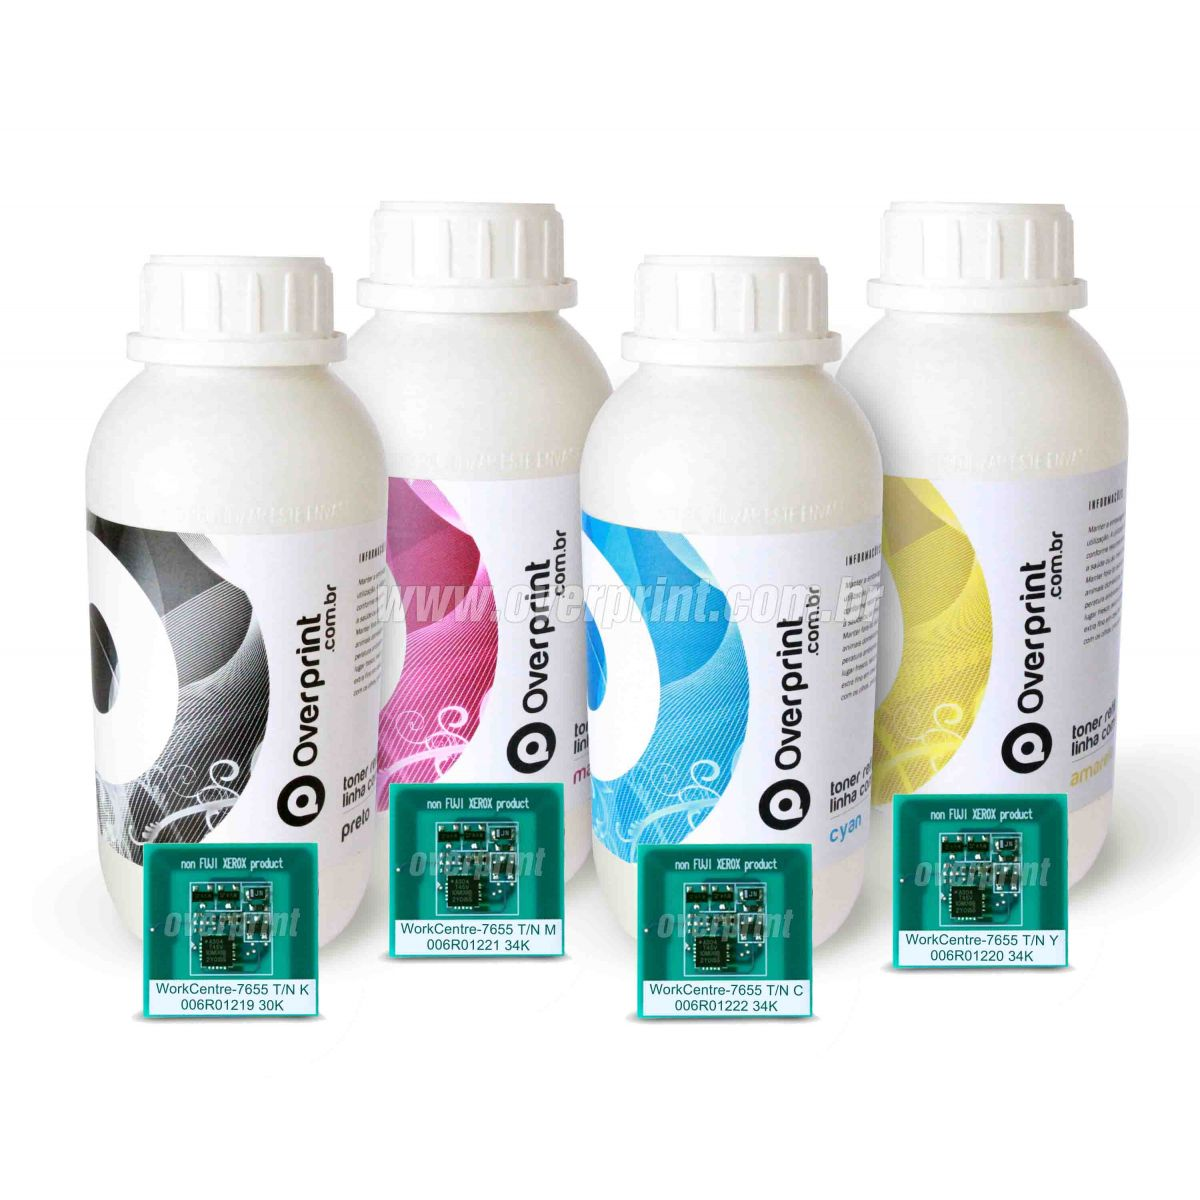 Kit Refil de Toner 4 cores + 4 Chips Xerox WorkCentre 7655/7665/7675 - Overprint